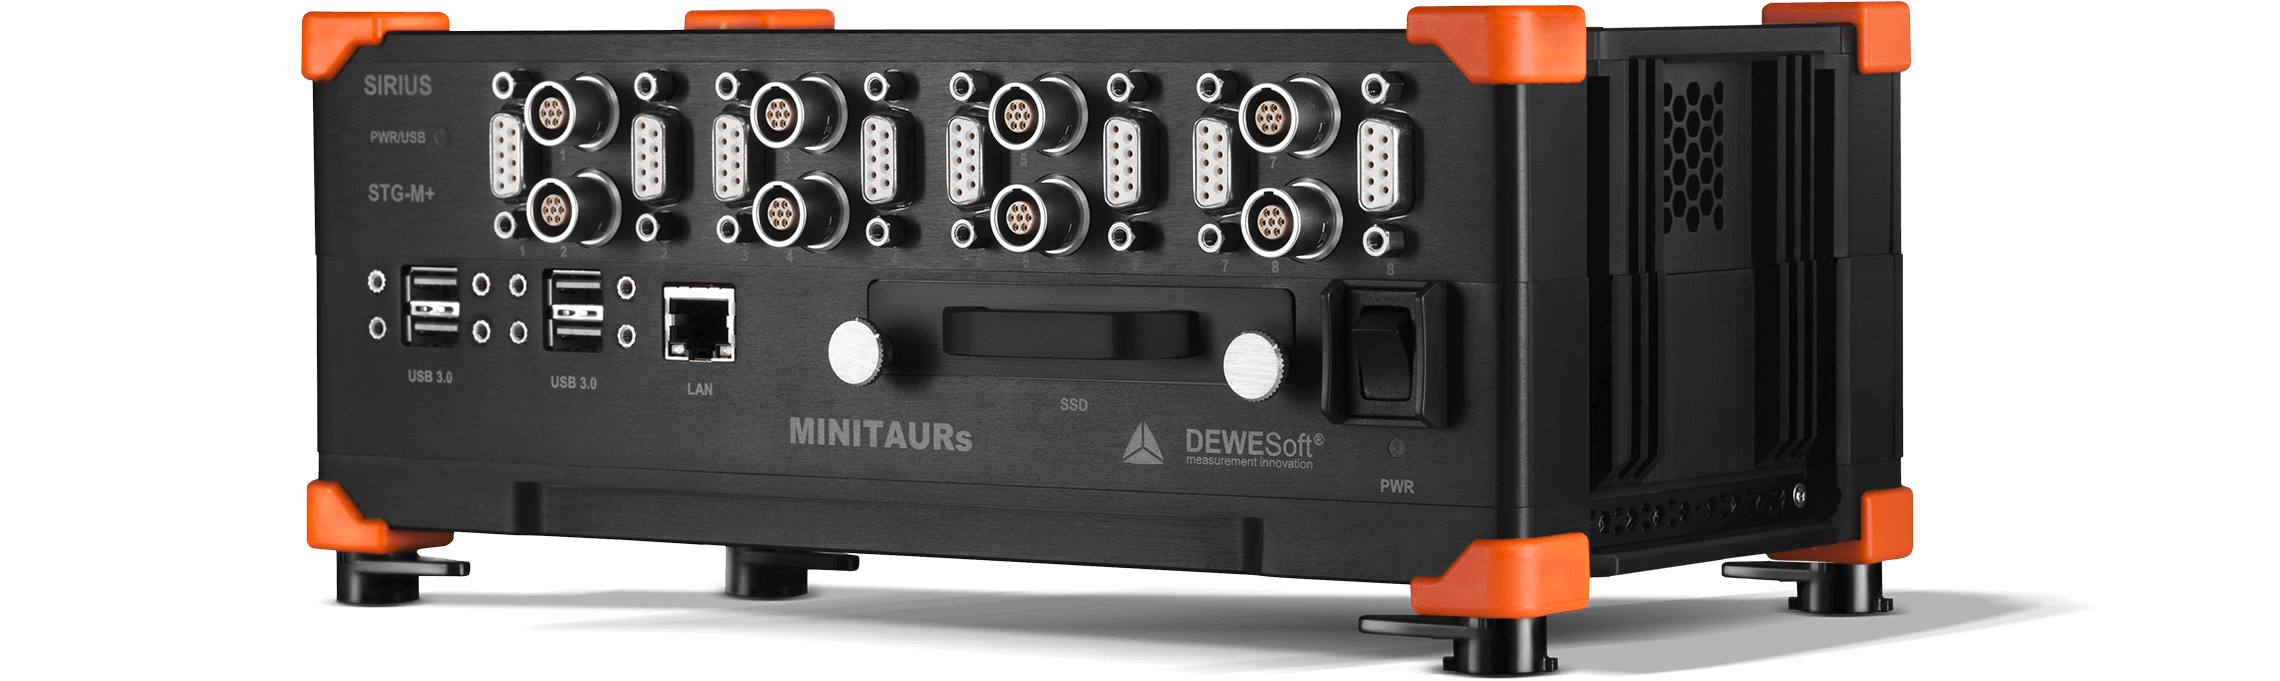 MINITAURs | 8 Channel Data Acquisition System | Dewesoft